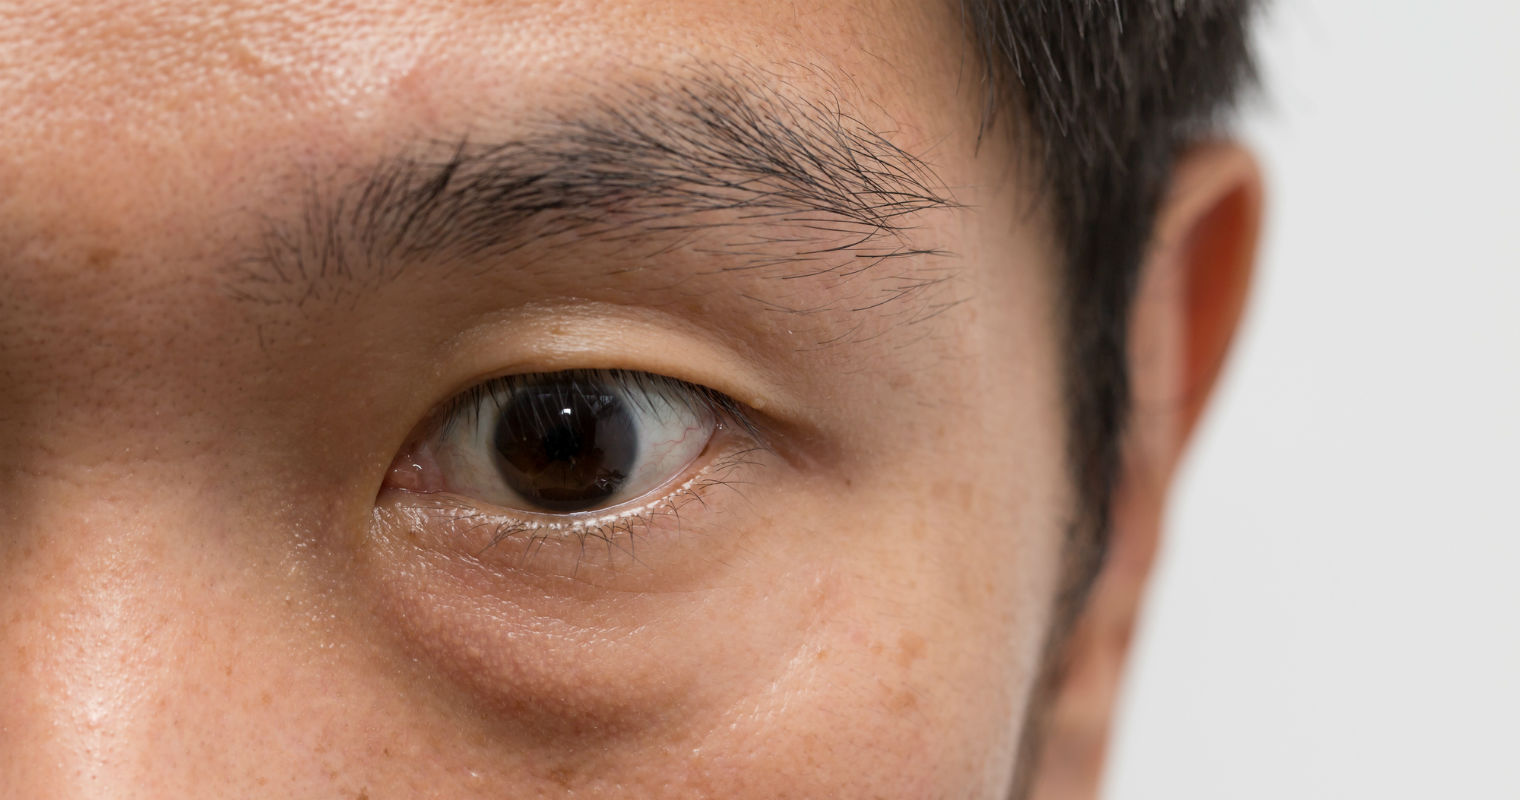 Eye bags can be a result of genetic or lifestyle factors